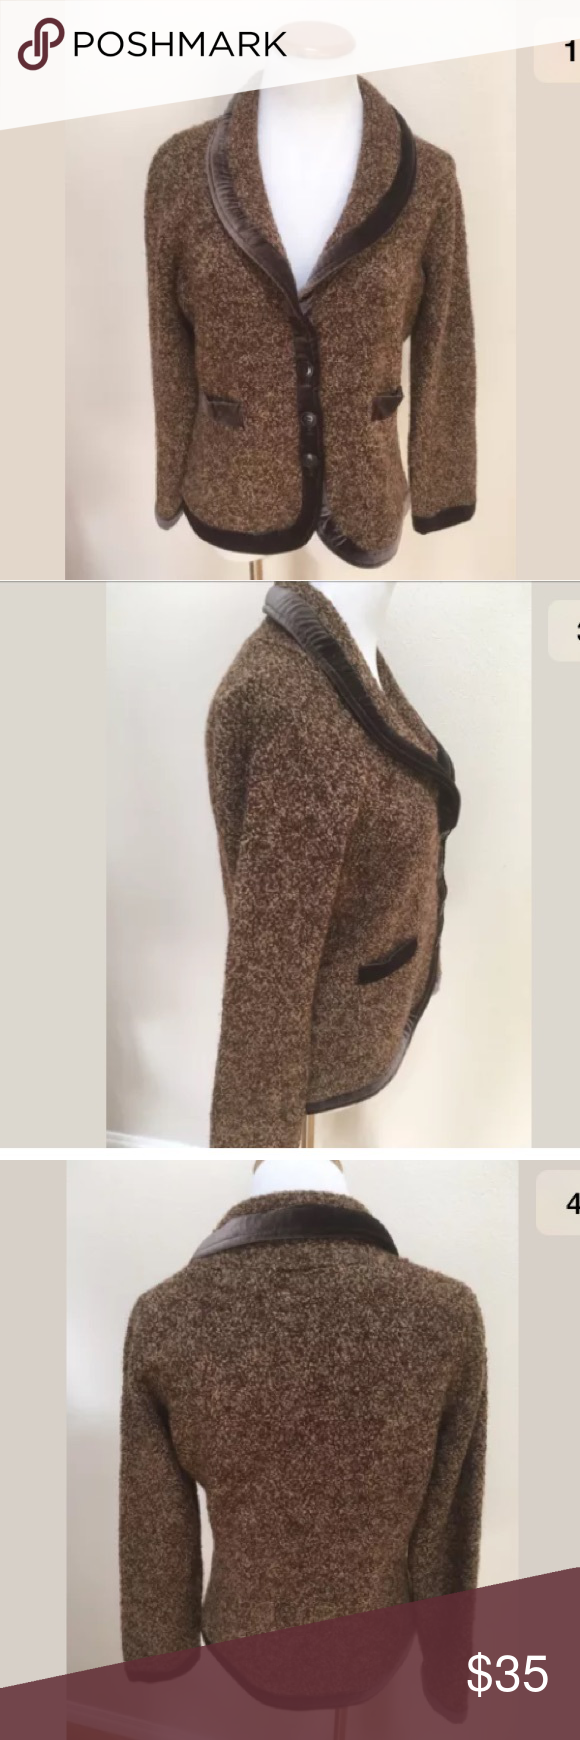 HWA Anthropologie Brown Sweater Jacket Large HWA Anthropologie ...